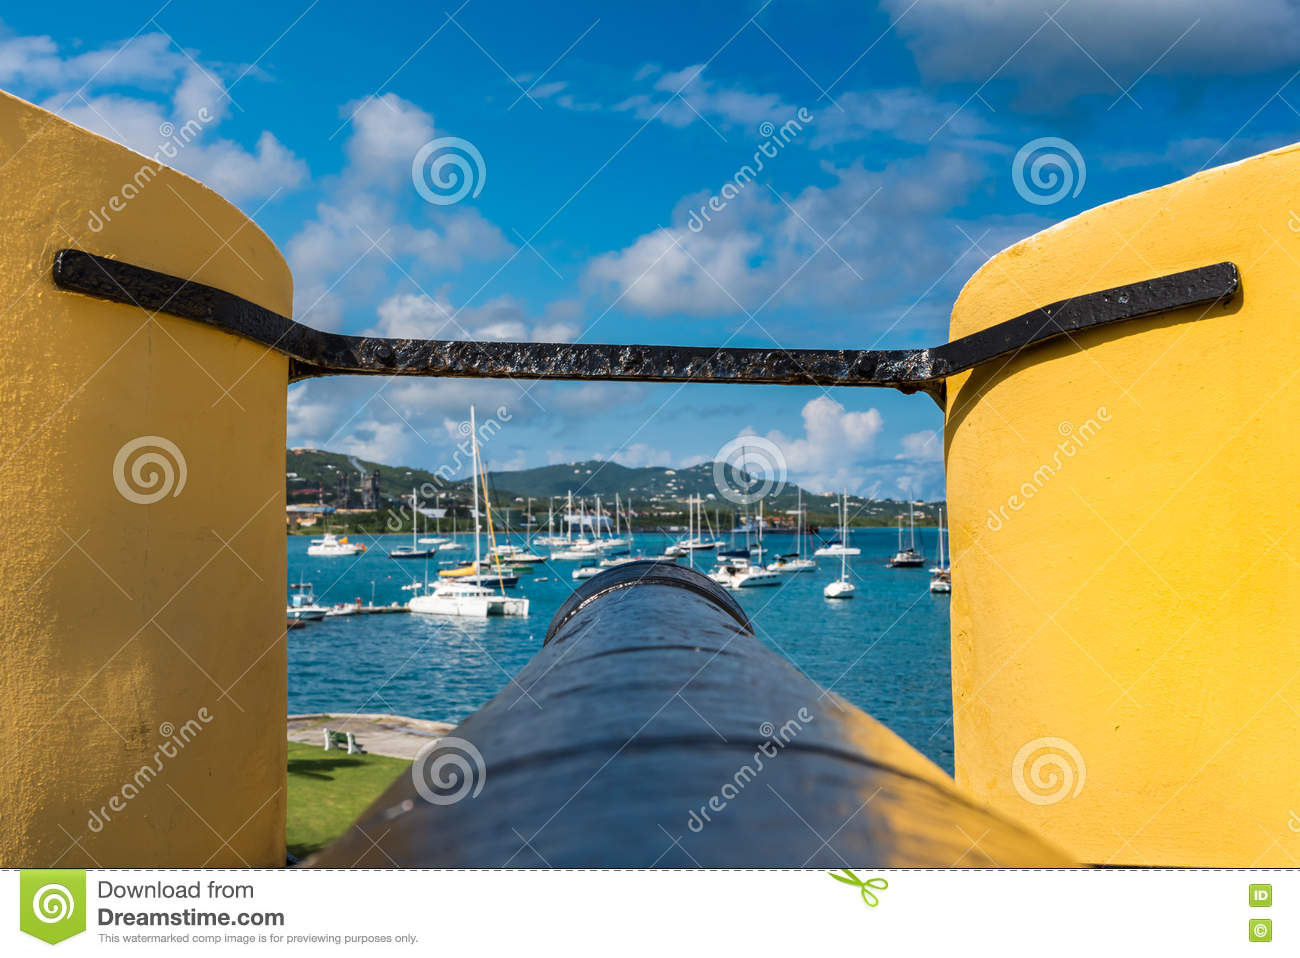 Tip of a vintage cannon through the turret facing the sailboats